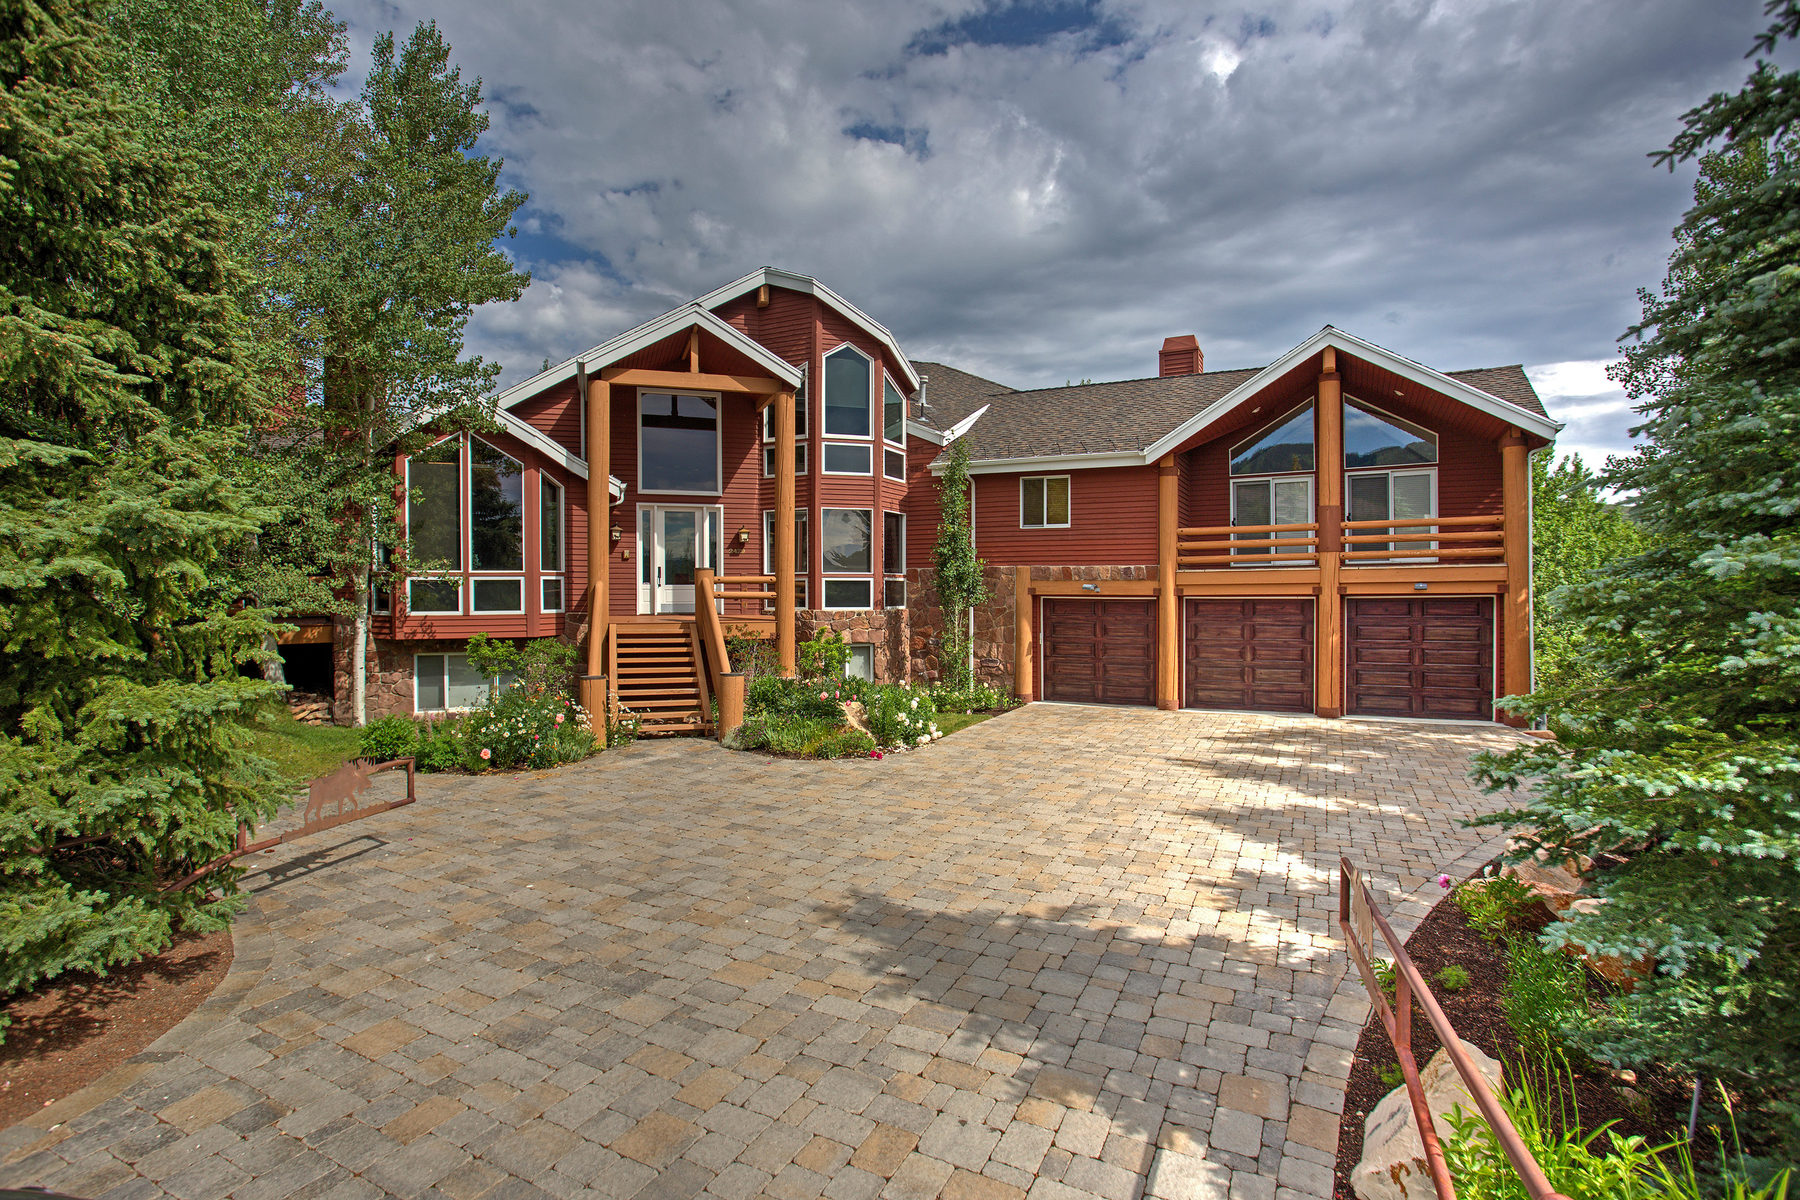 Single Family Home for Sale at Seclusion and Views in a Prestigious Neighborhood 2429 Iron Canyon Dr Park City, Utah, 84060 United States